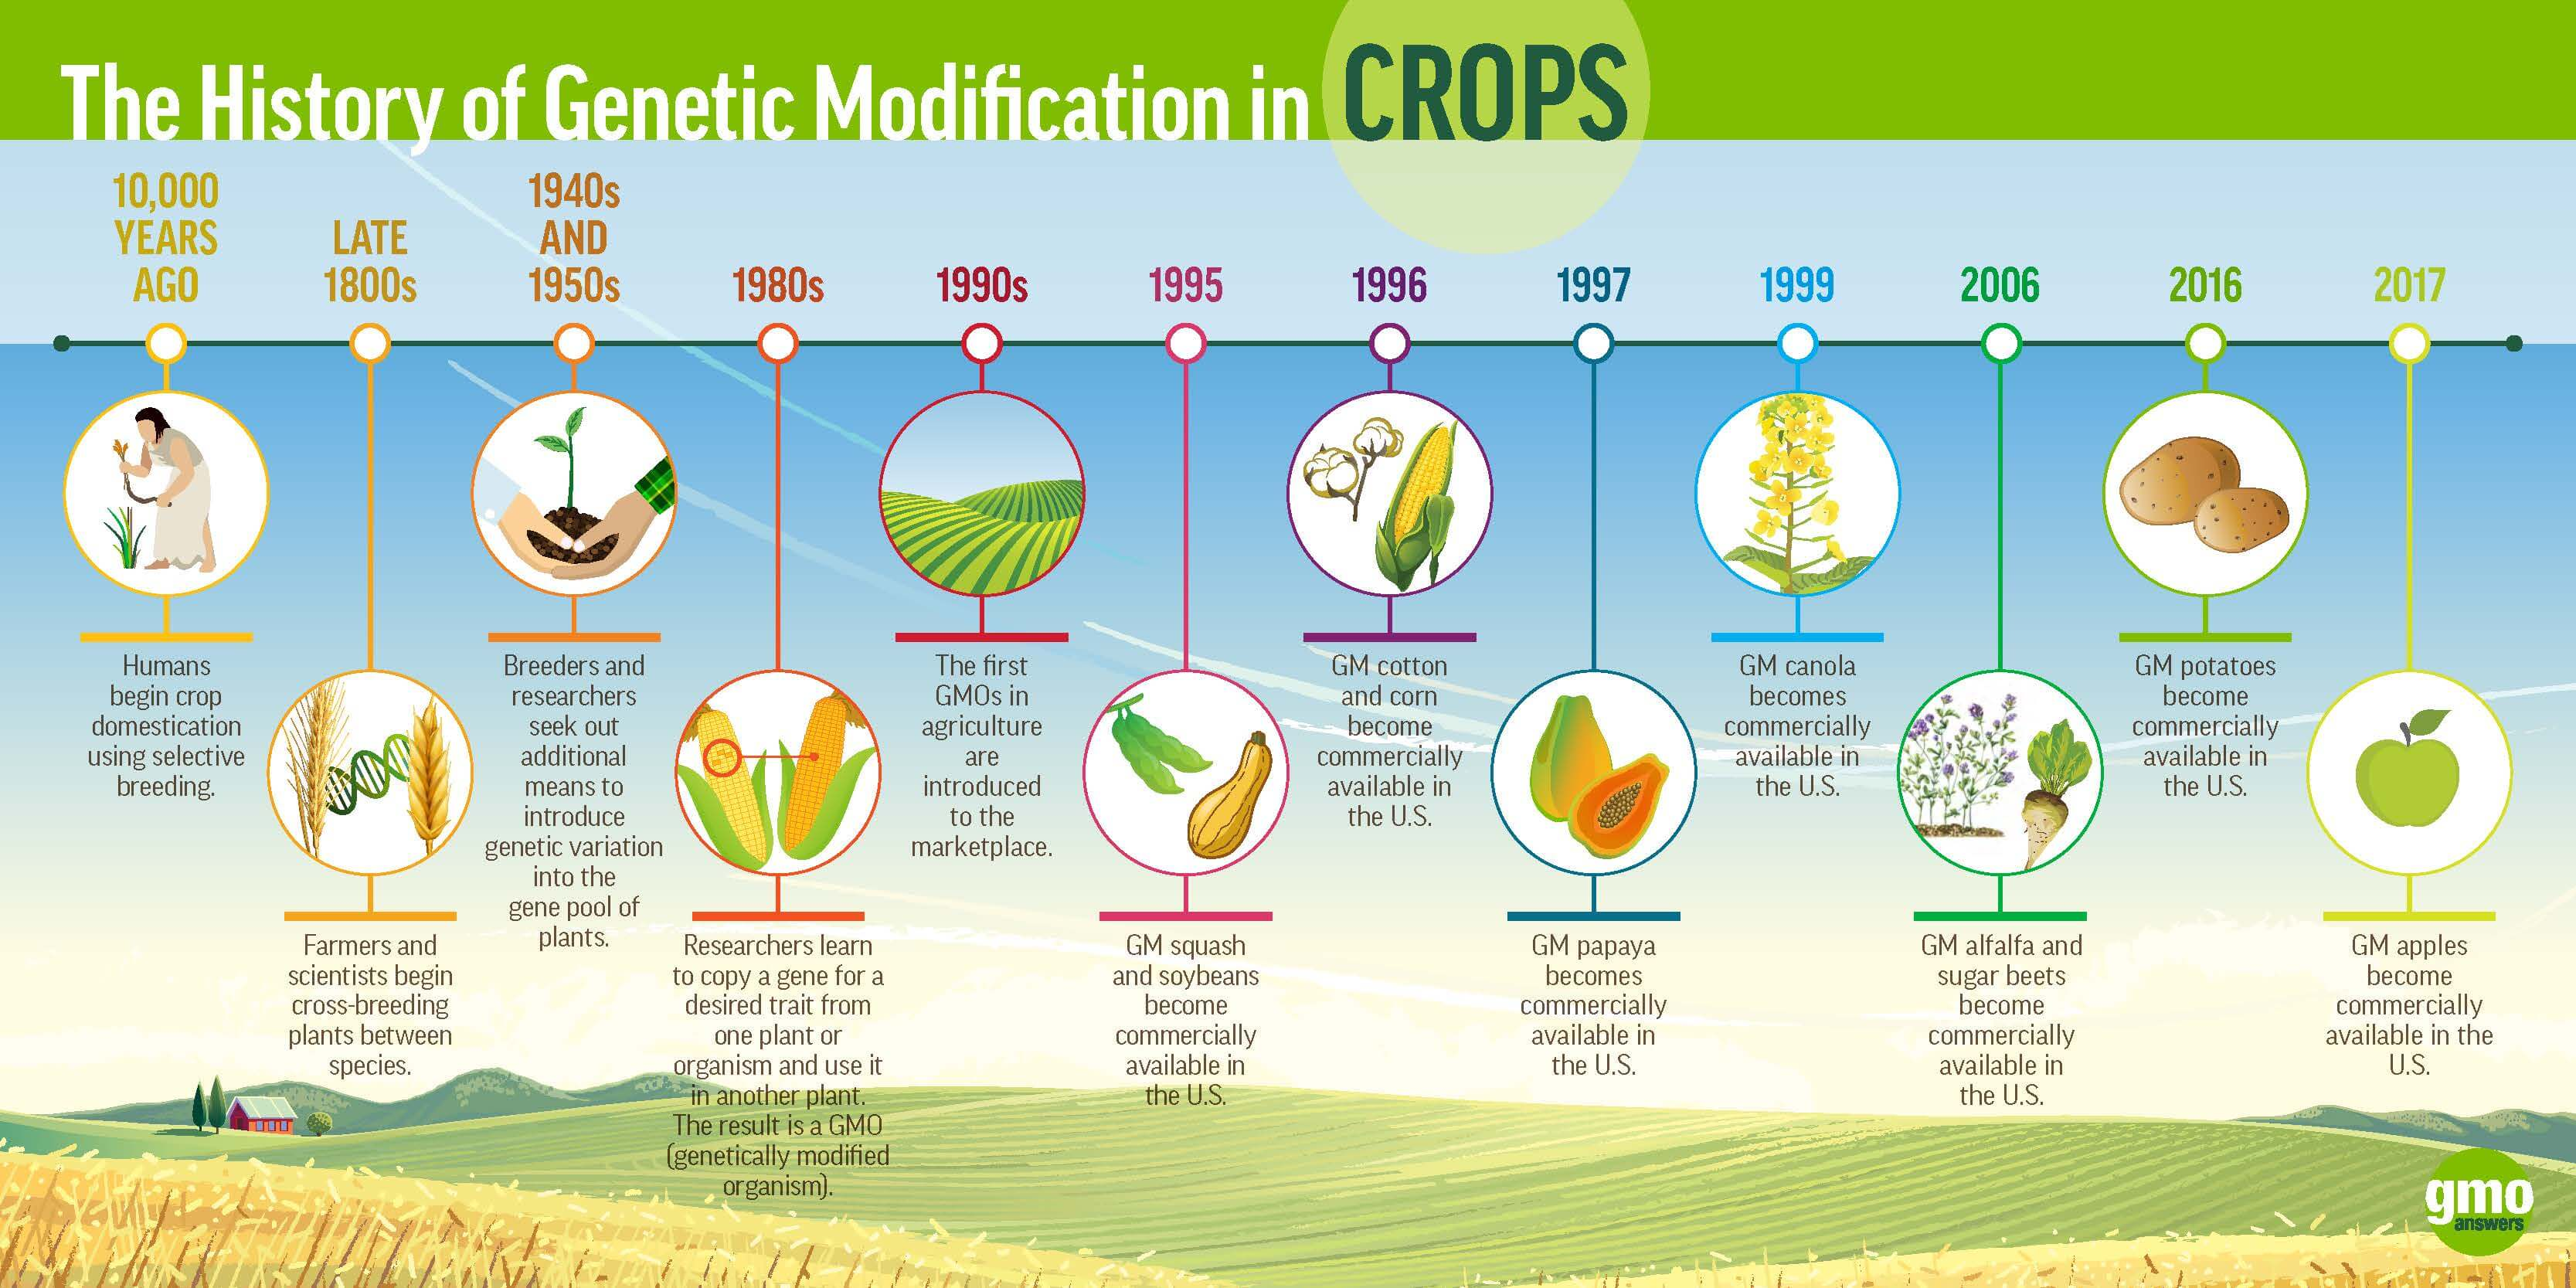 gmoa history of gm in crops x px jan